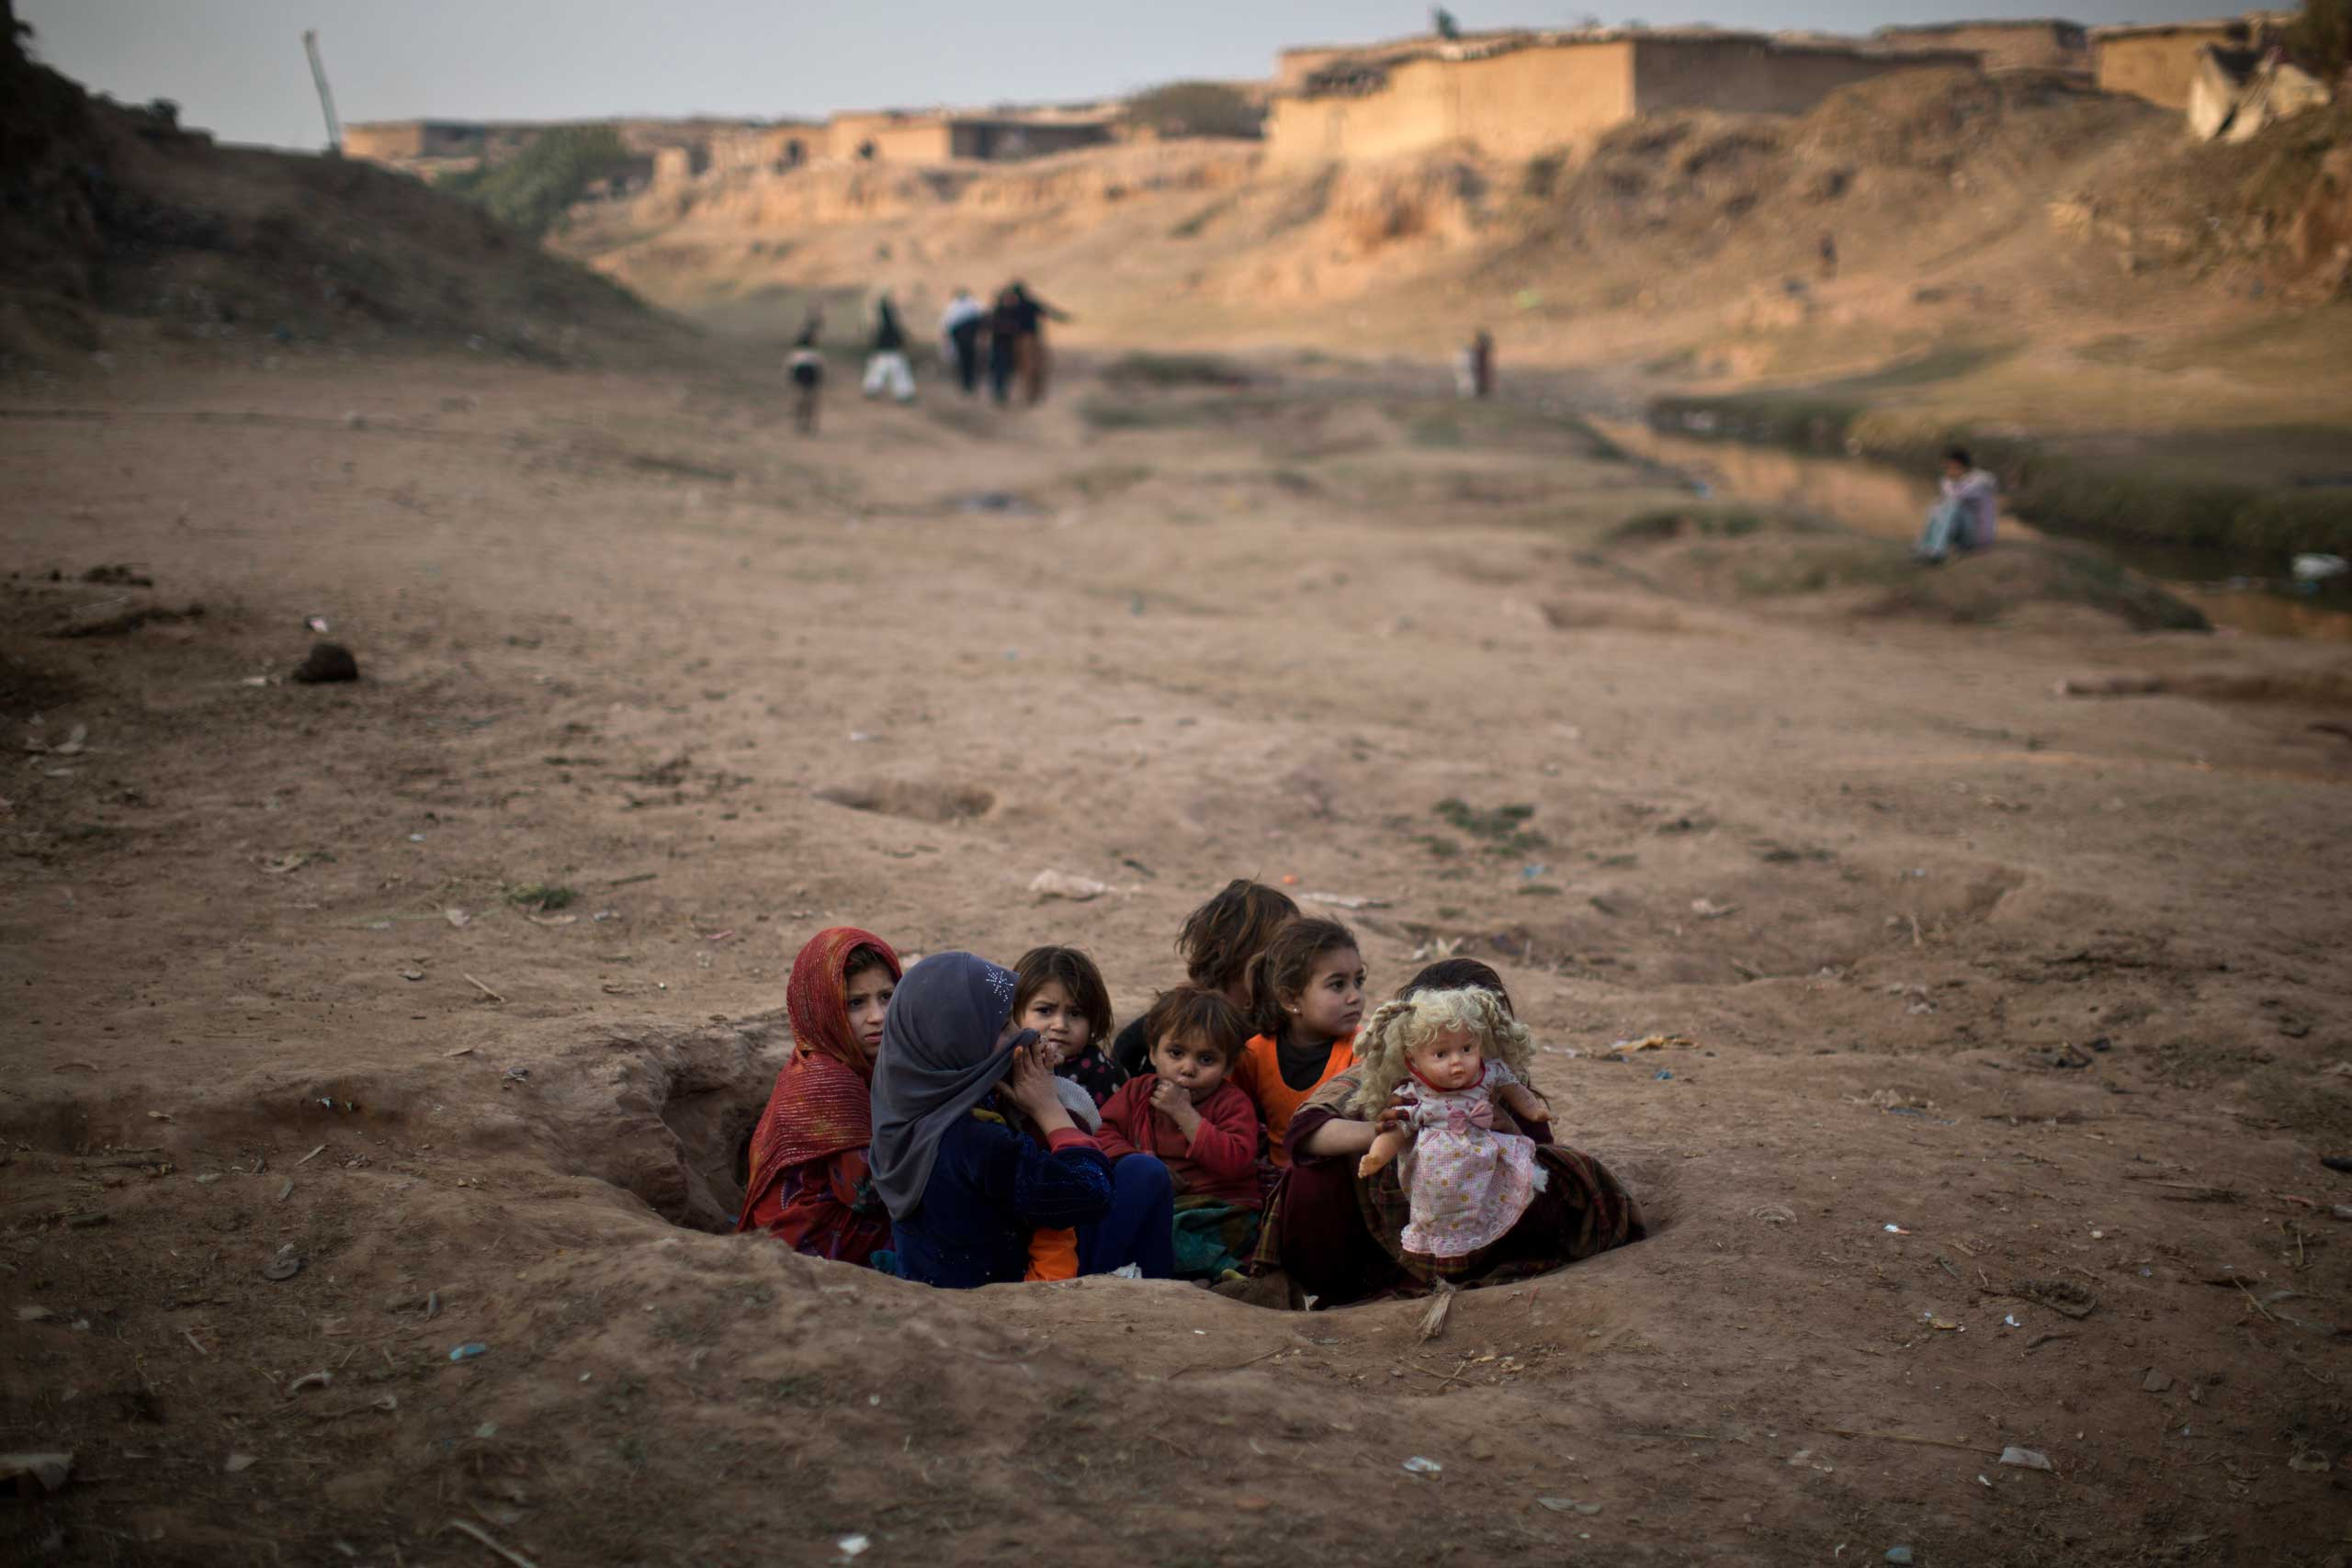 Afghan refugee girls sit in a hole in the ground, playing with a doll in a slum areas on the outskirts of Islamabad, Pakistan, Saturday, Jan. 3, 2015.